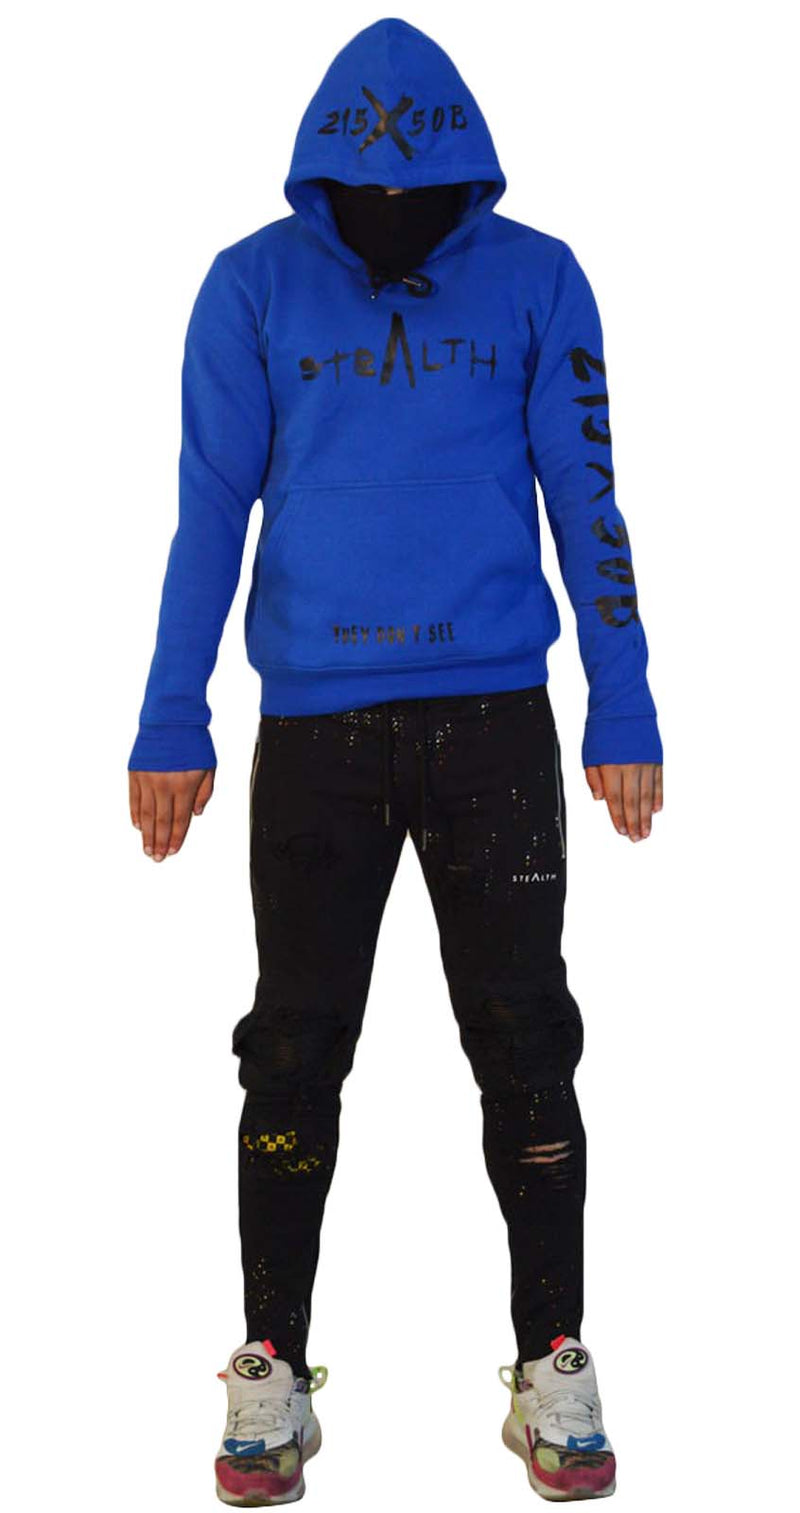 215X50B Hoody (Stealth Blue)